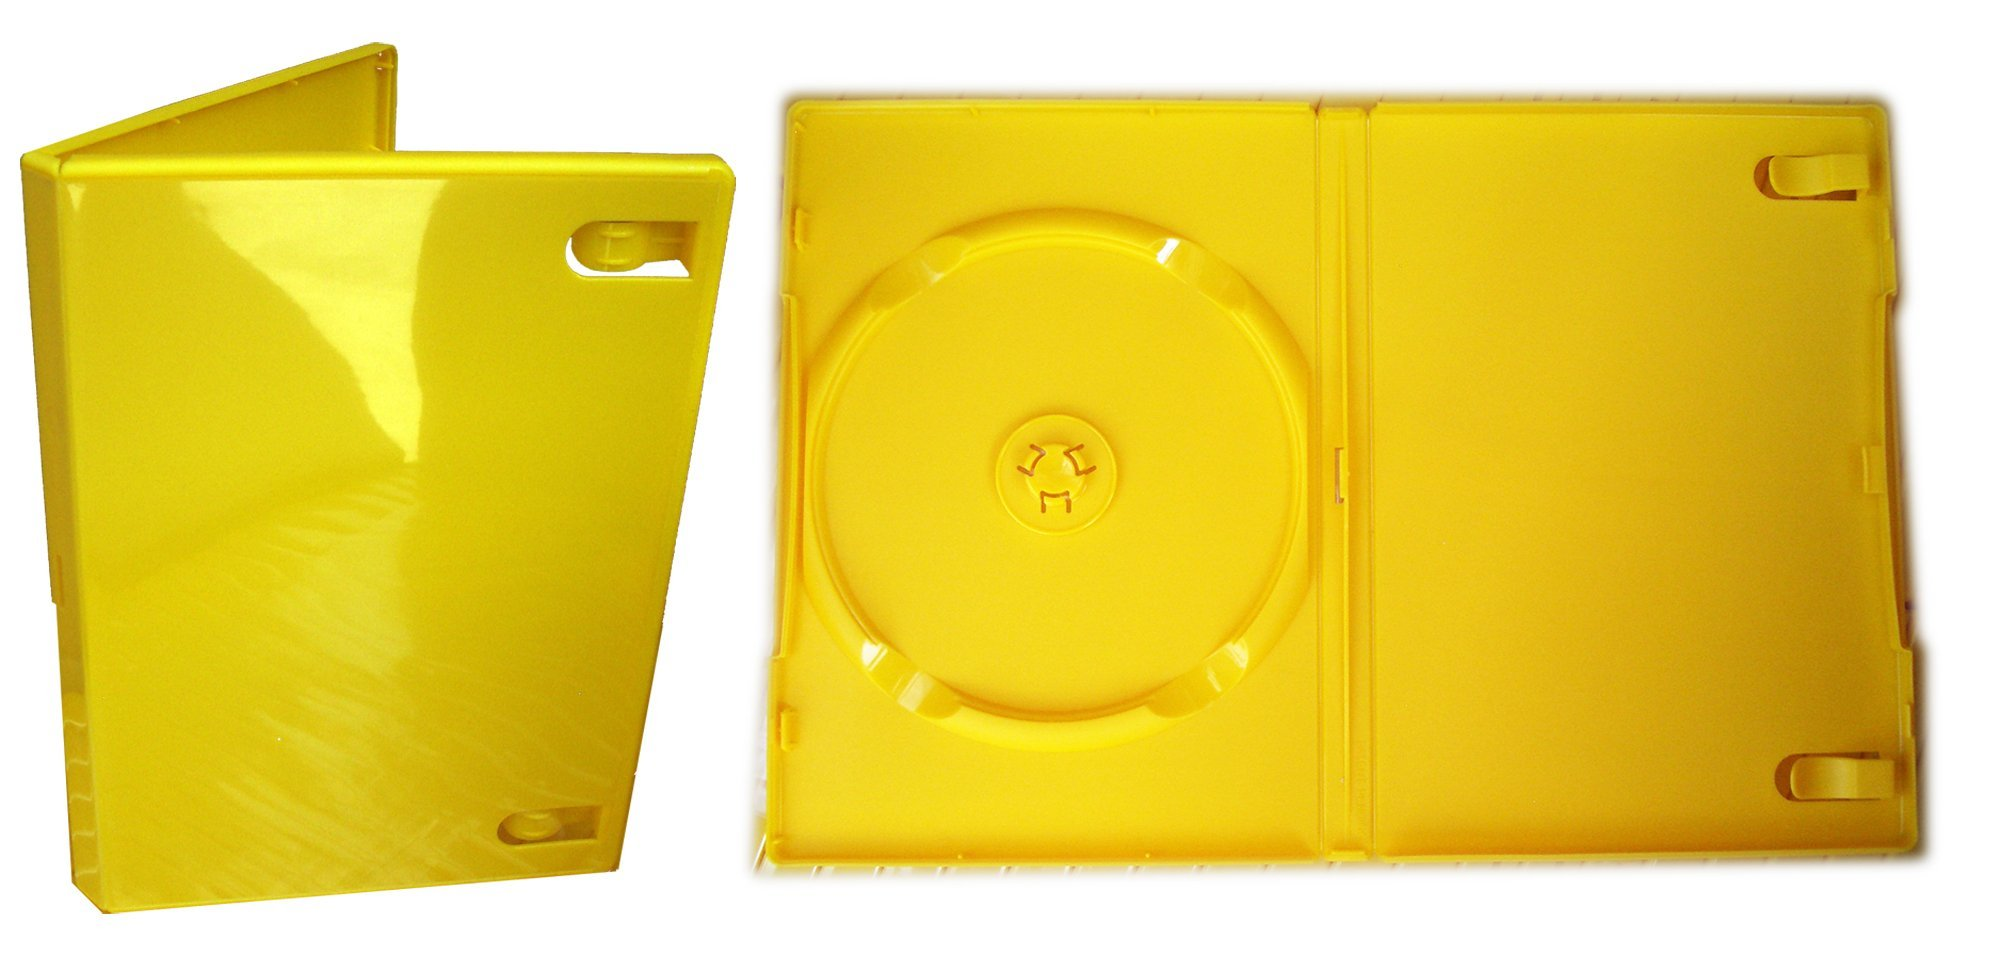 Naber Bv High Quality Single Dvd Libray Case Pack Of 50 Yellow